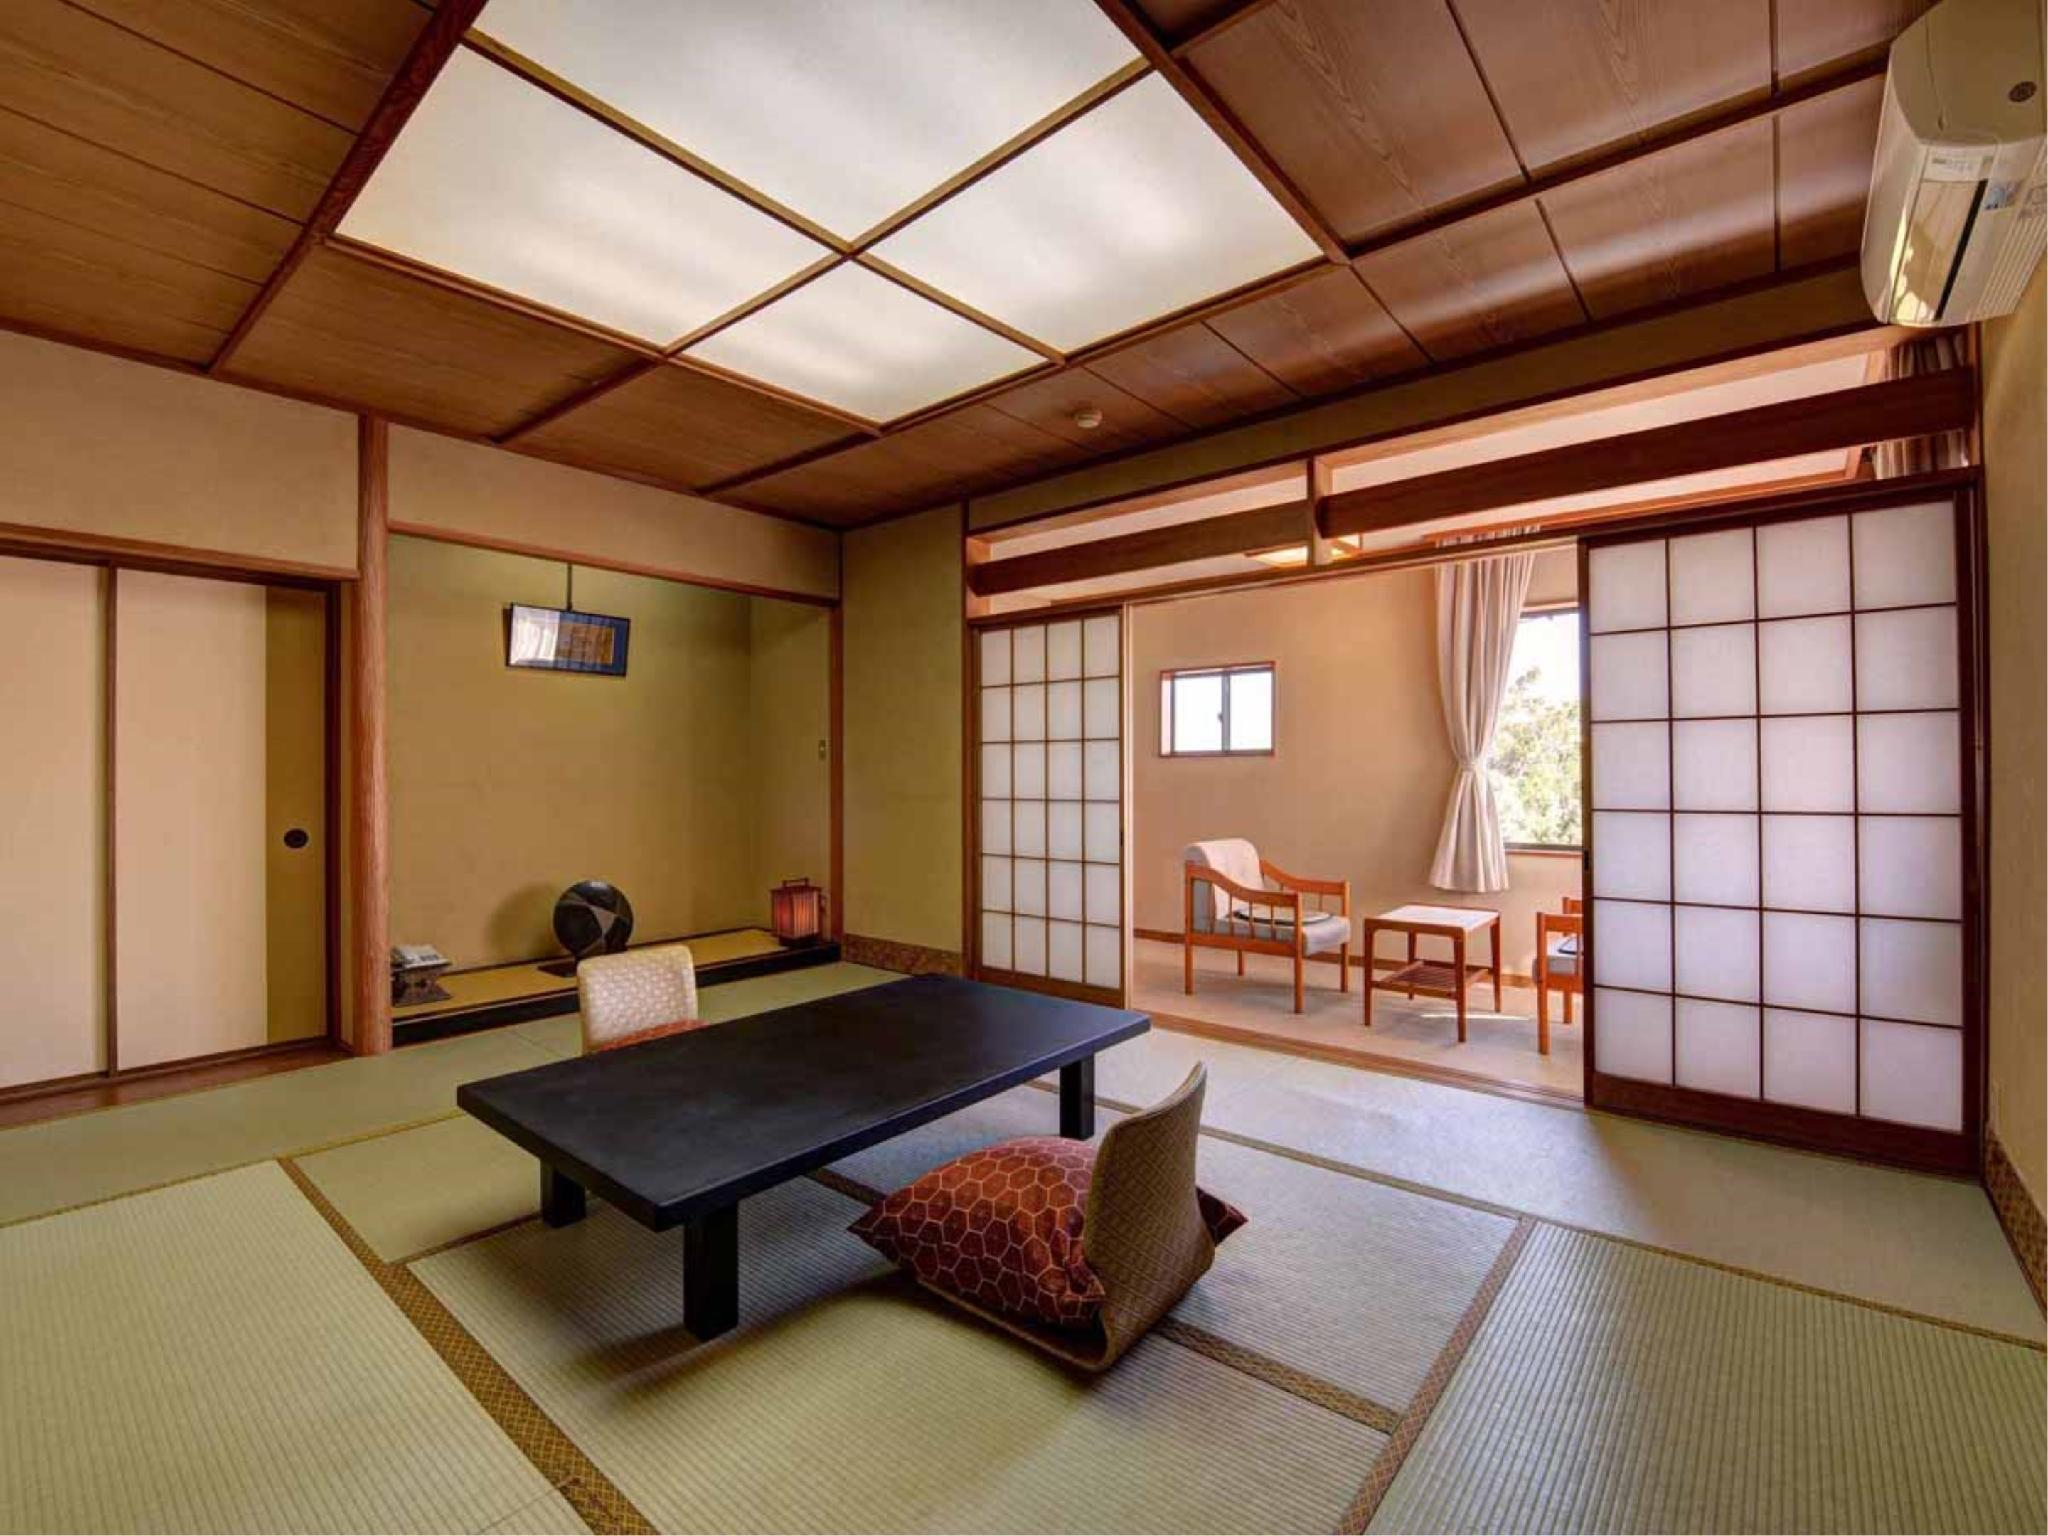 Japanese-style Room (Lower Floors, Main Building)